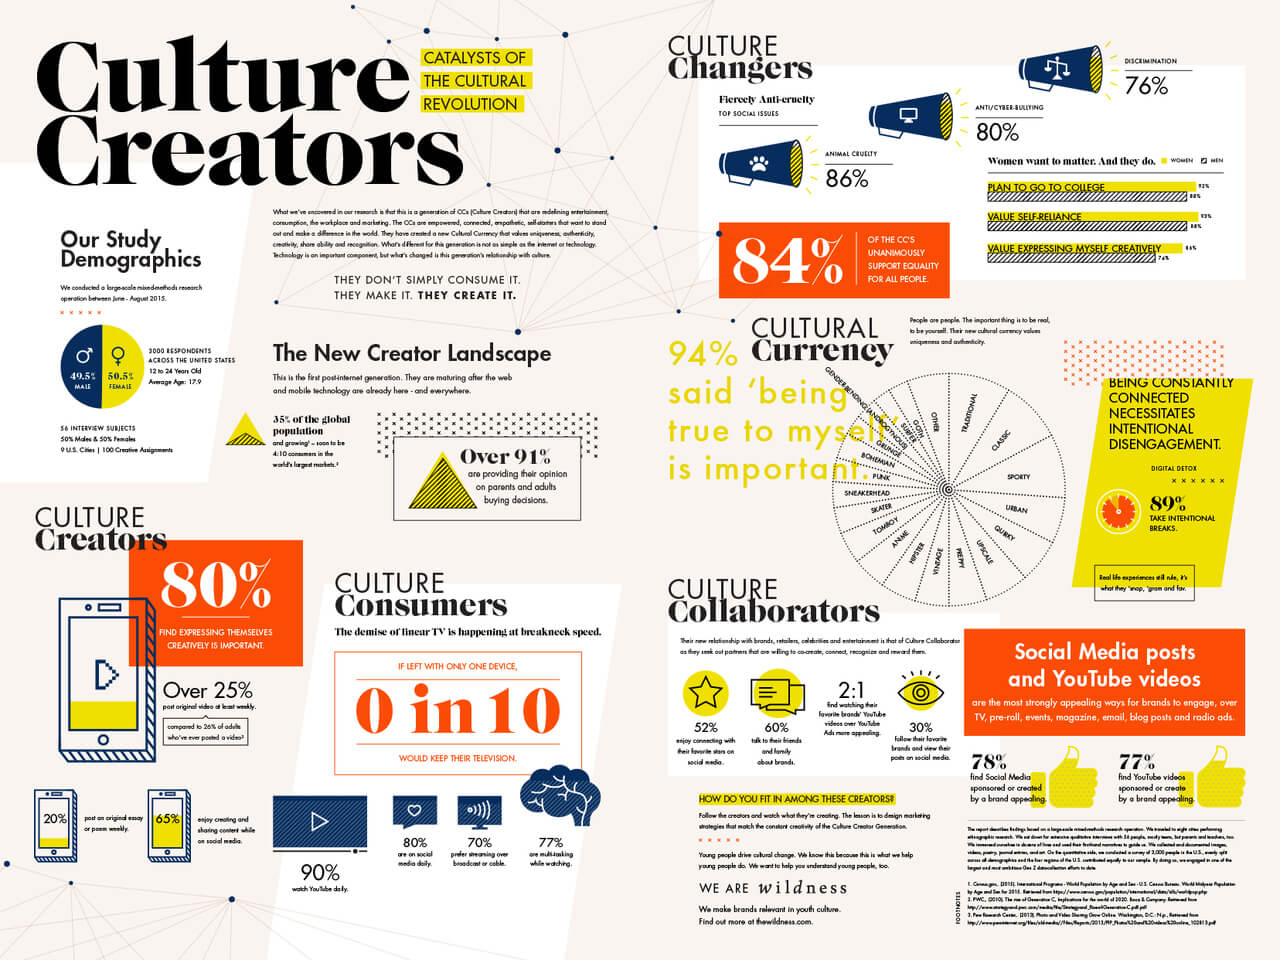 Best Infographics: Culture Creators: Catalysts Of The Creative Revolution